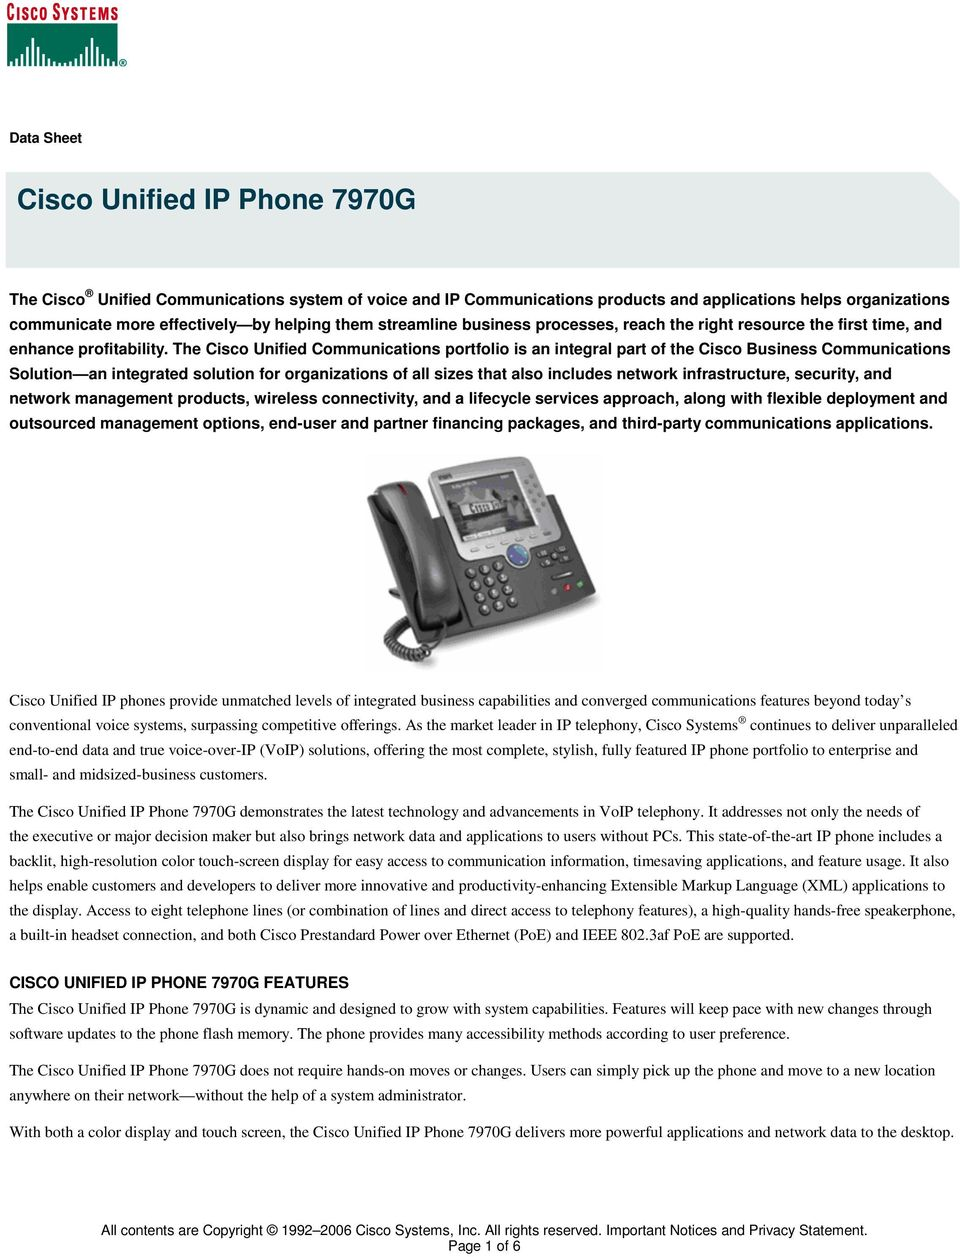 The Cisco Unified Communications portfolio is an integral part of the Cisco Business Communications Solution an integrated solution for organizations of all sizes that also includes network